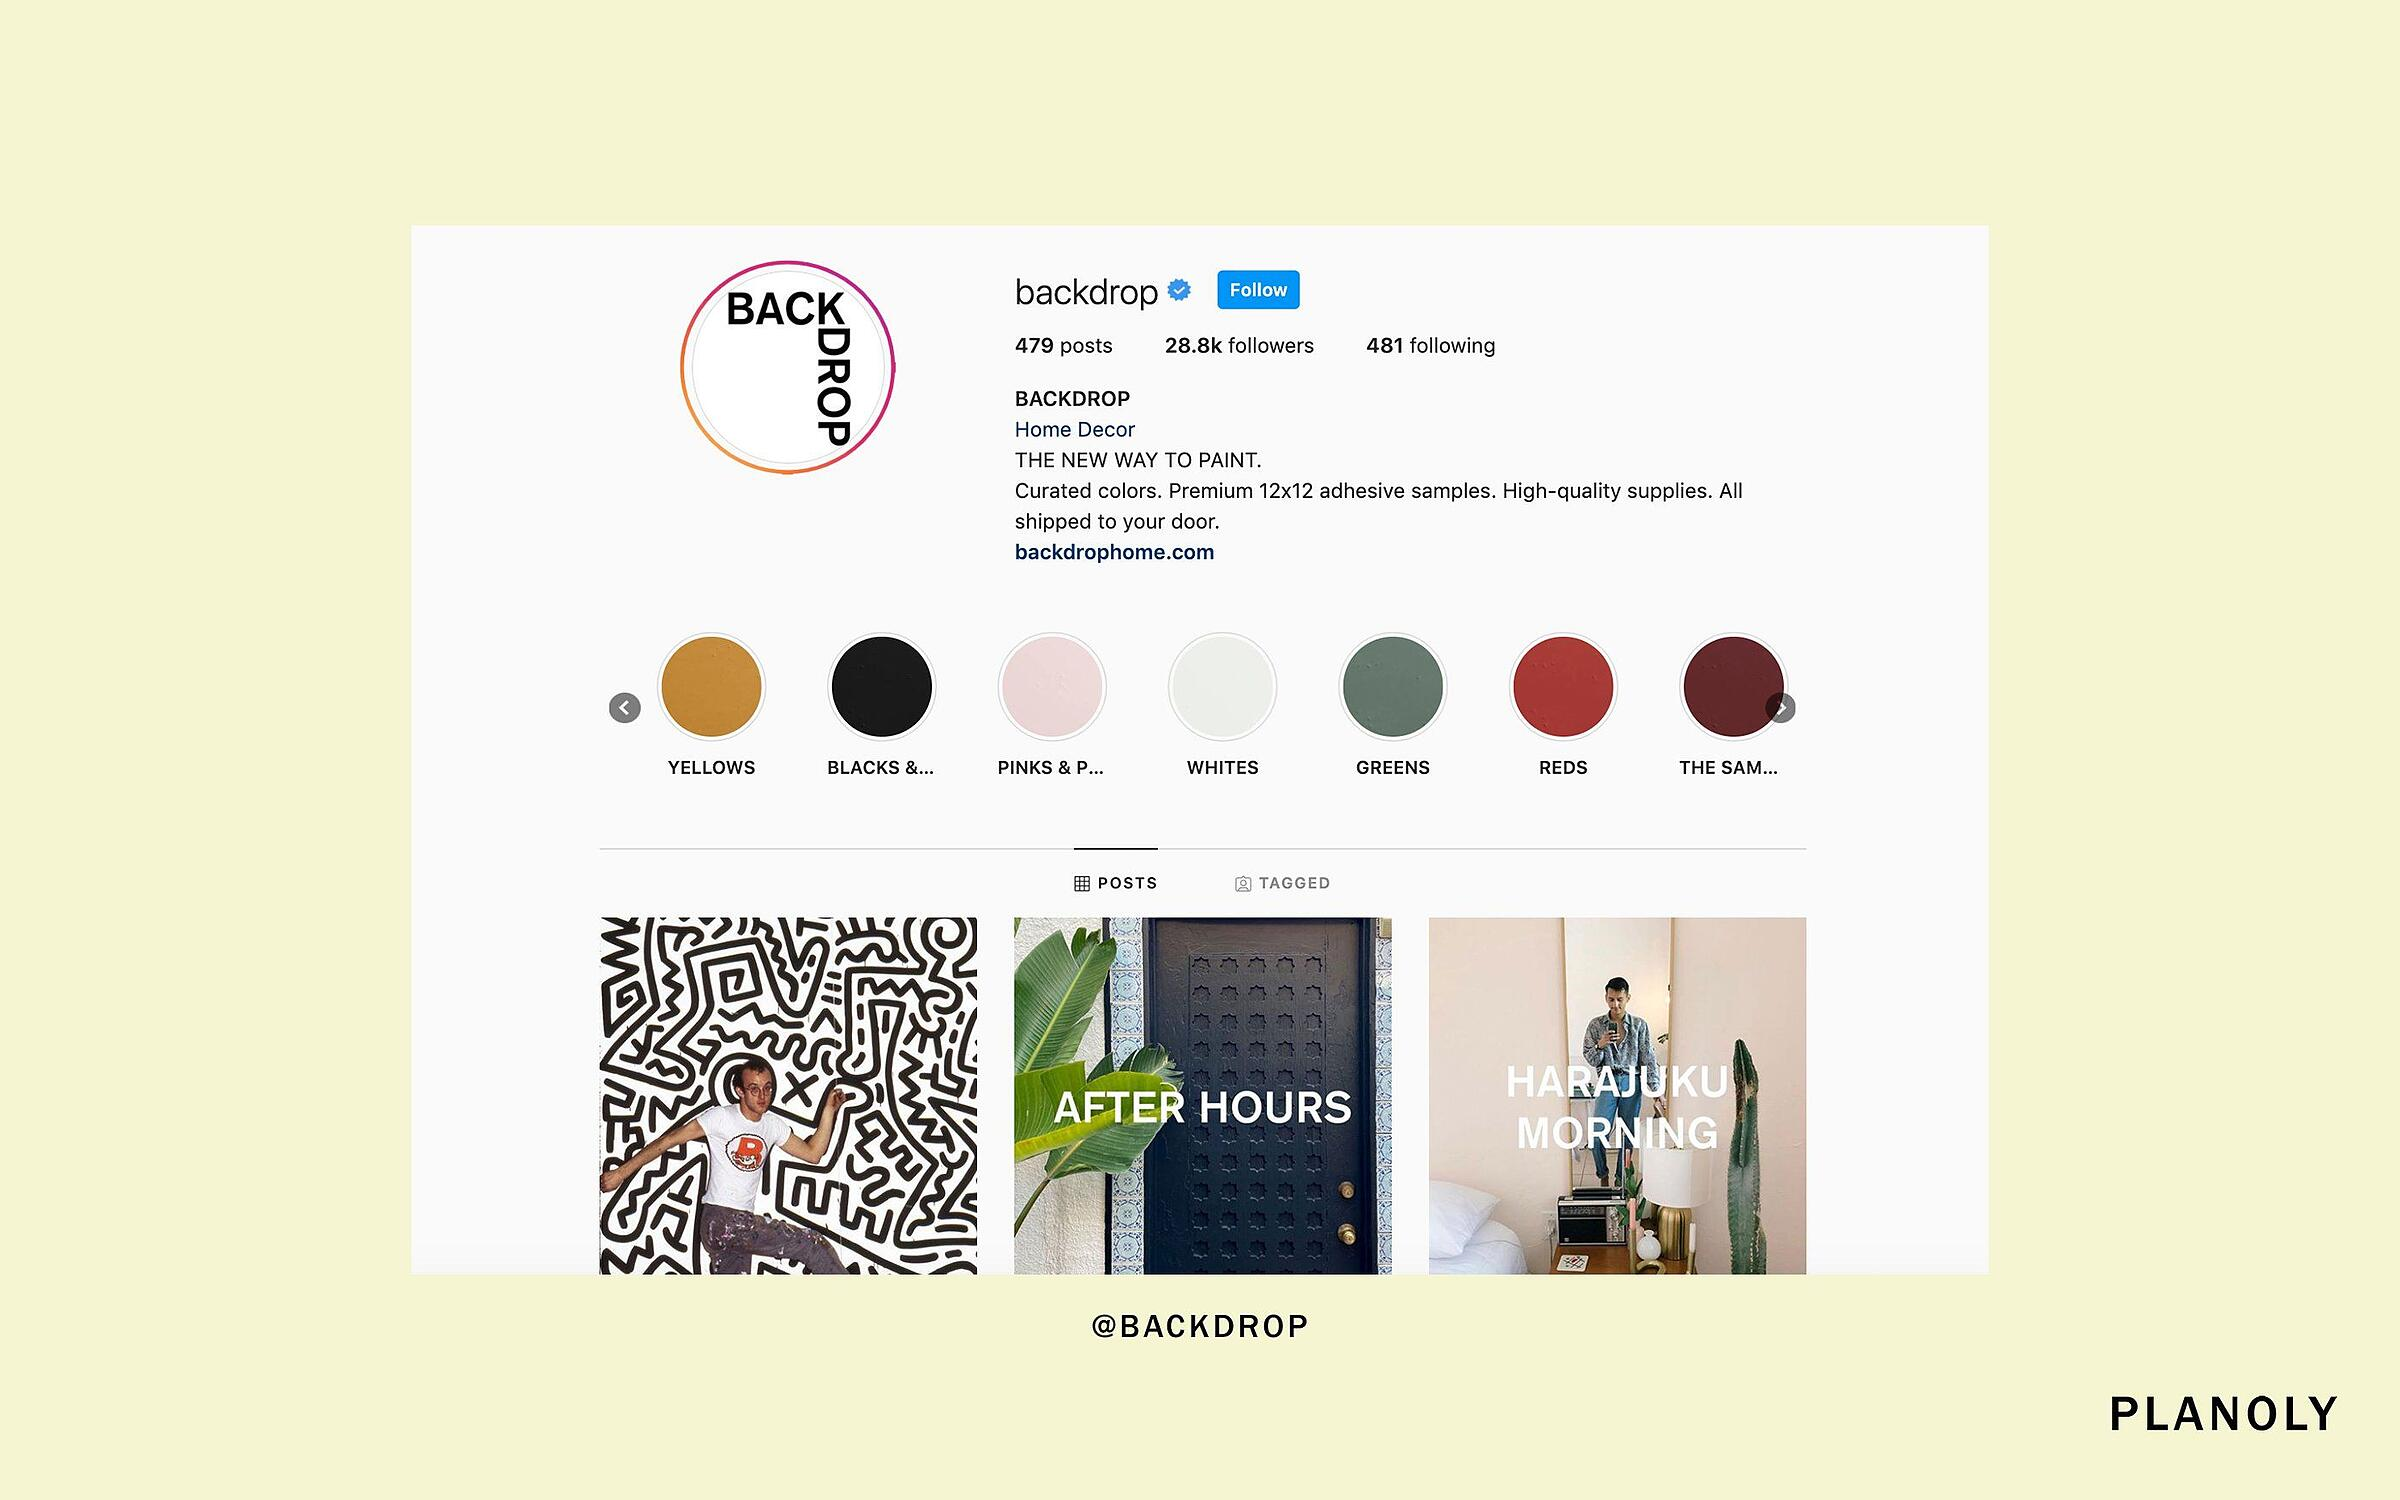 PLANOLY - Blog Post - How to Create Instagram Stories Highlights That Serve Your Customers - Image 3